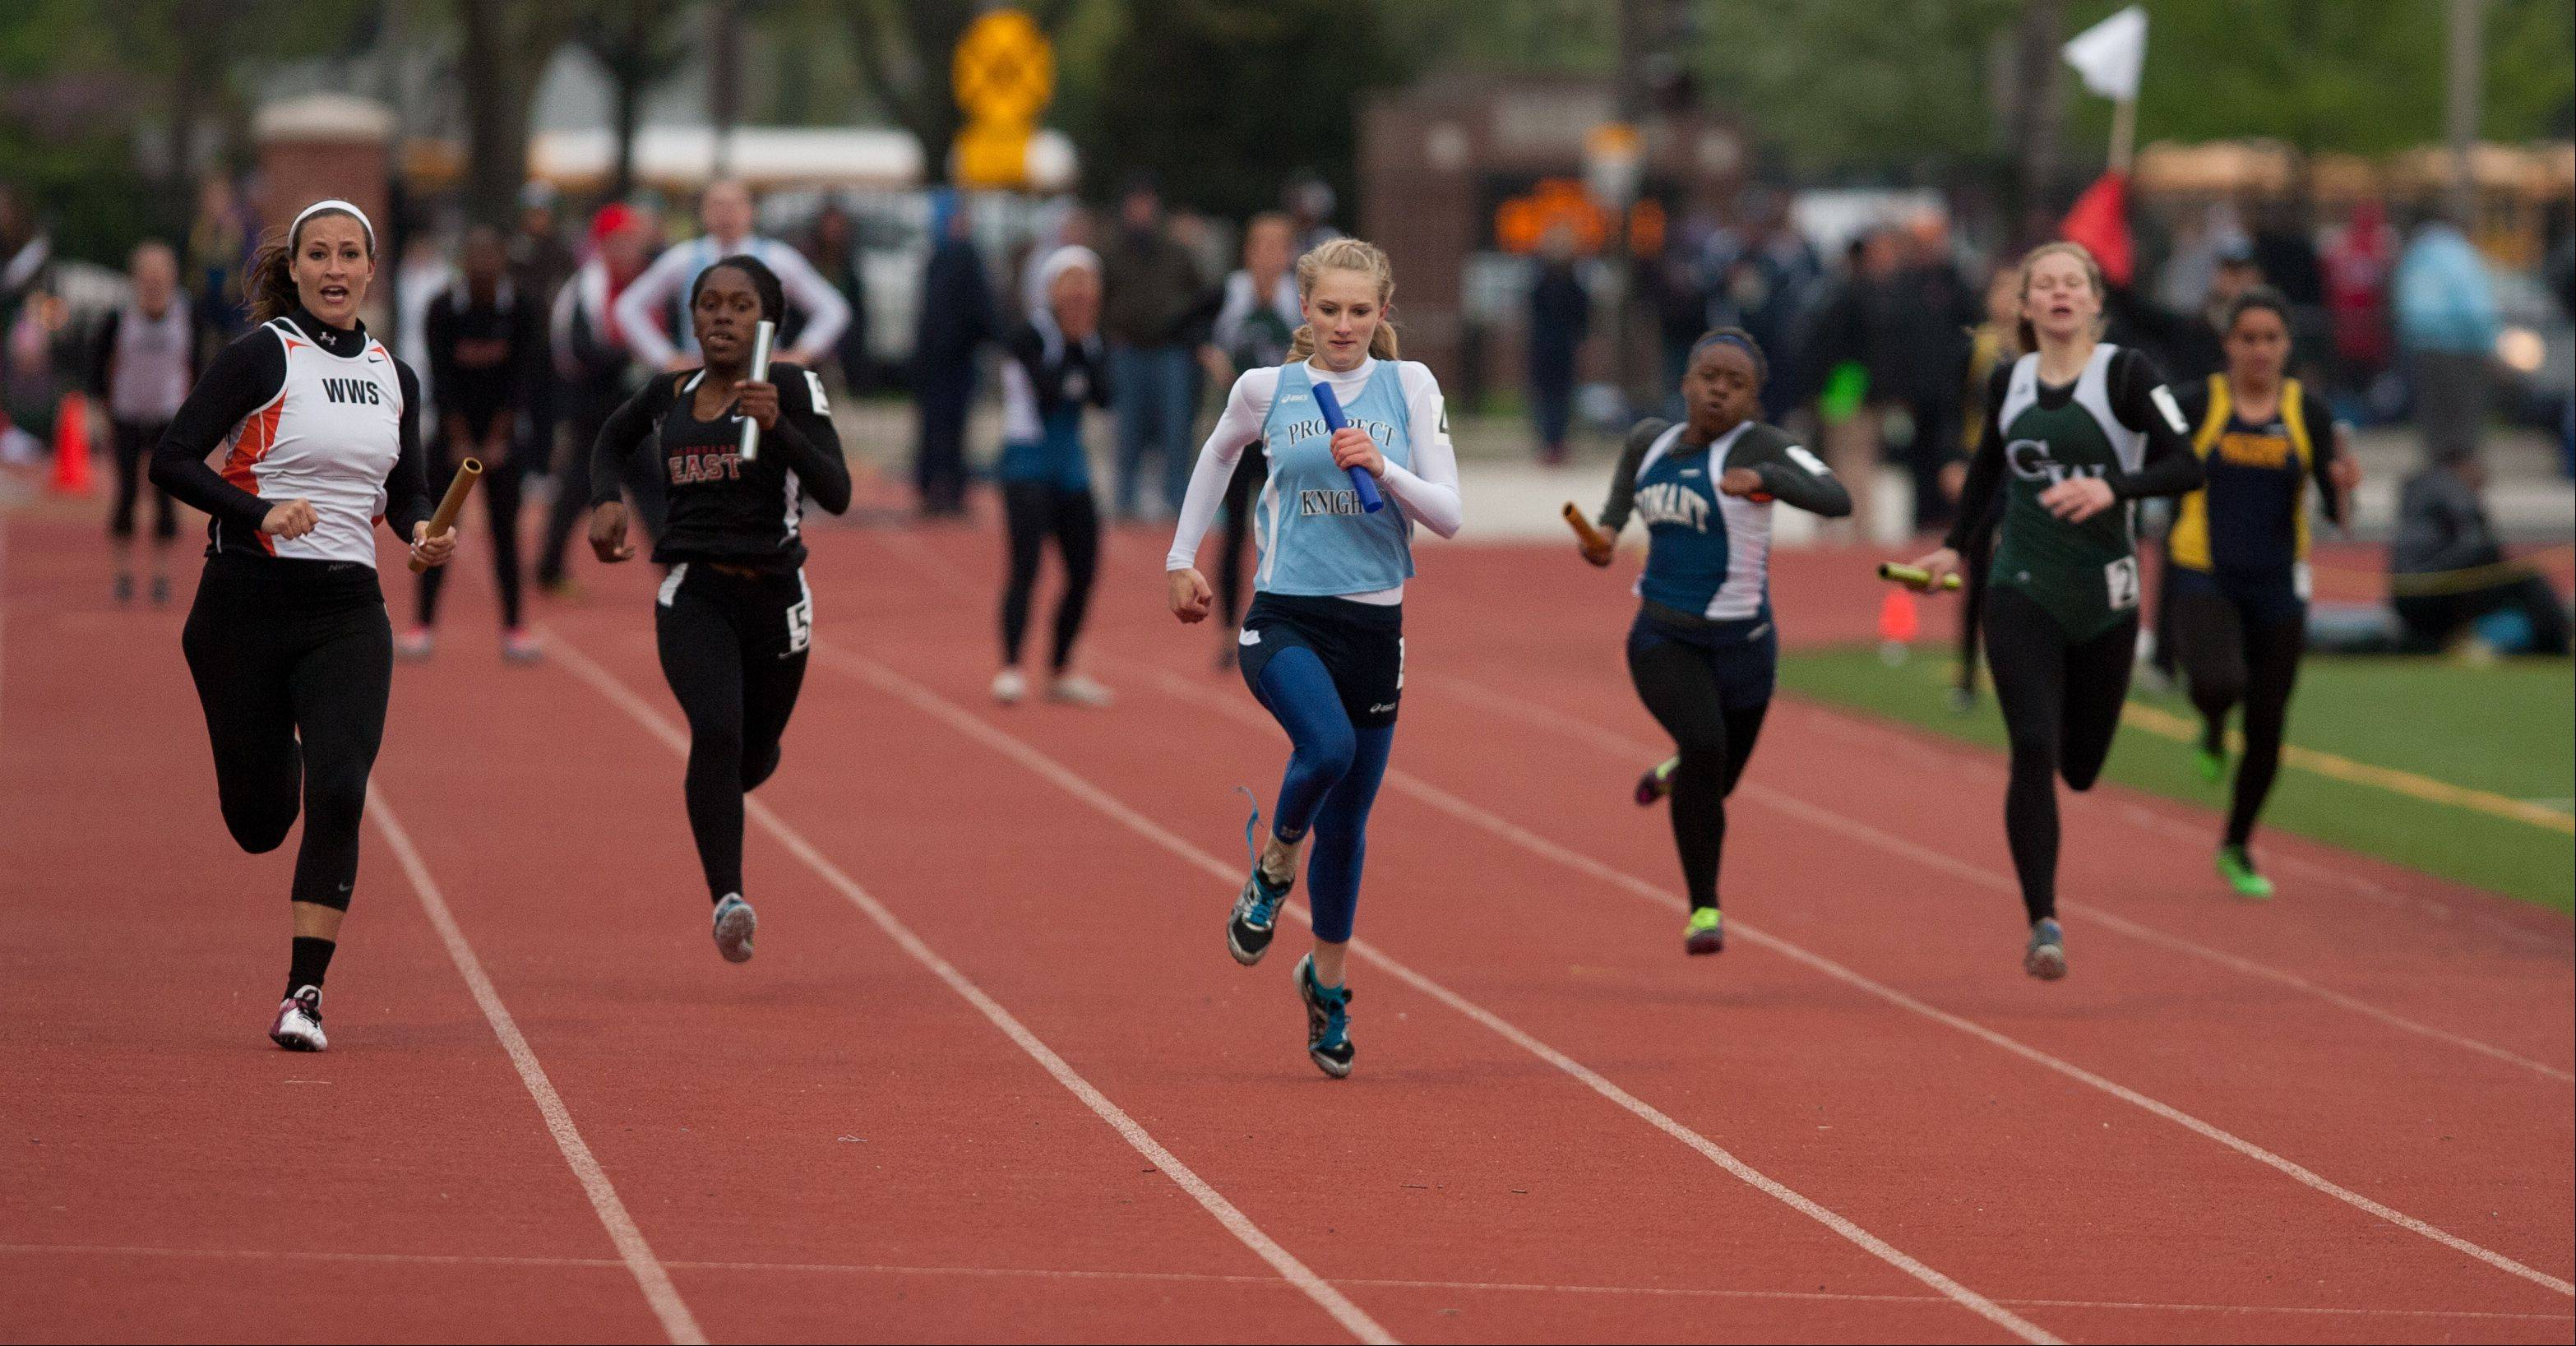 Prospect's Jessica Skudlarek anchors a 4 x 100-meter relay win during the York sectional Friday.